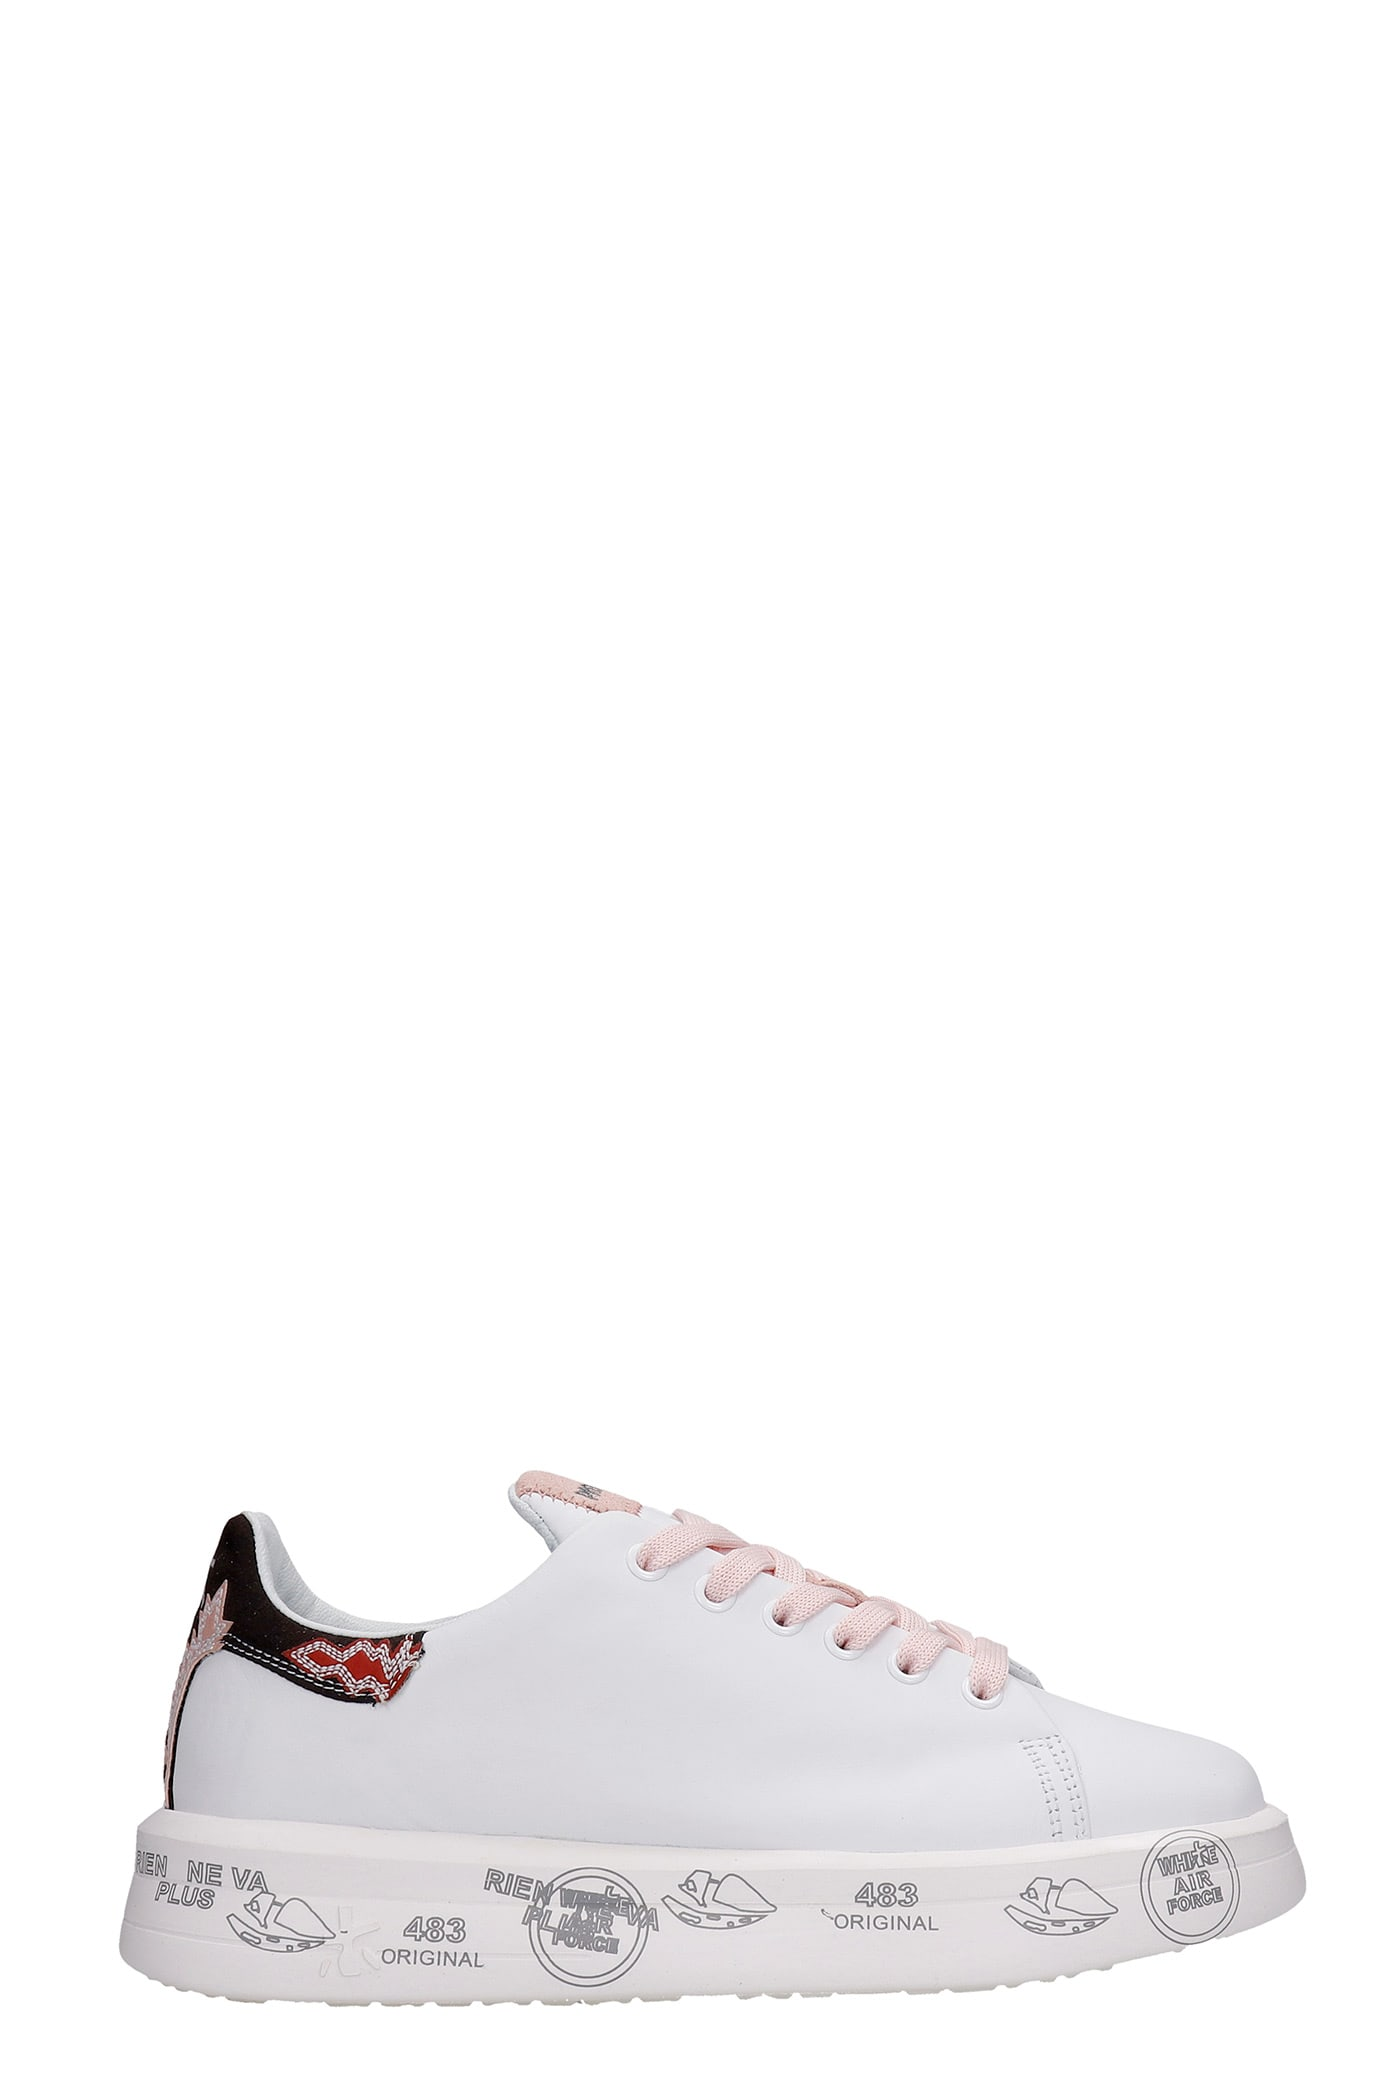 Premiata Suedes BELLE SNEAKERS IN WHITE LEATHER